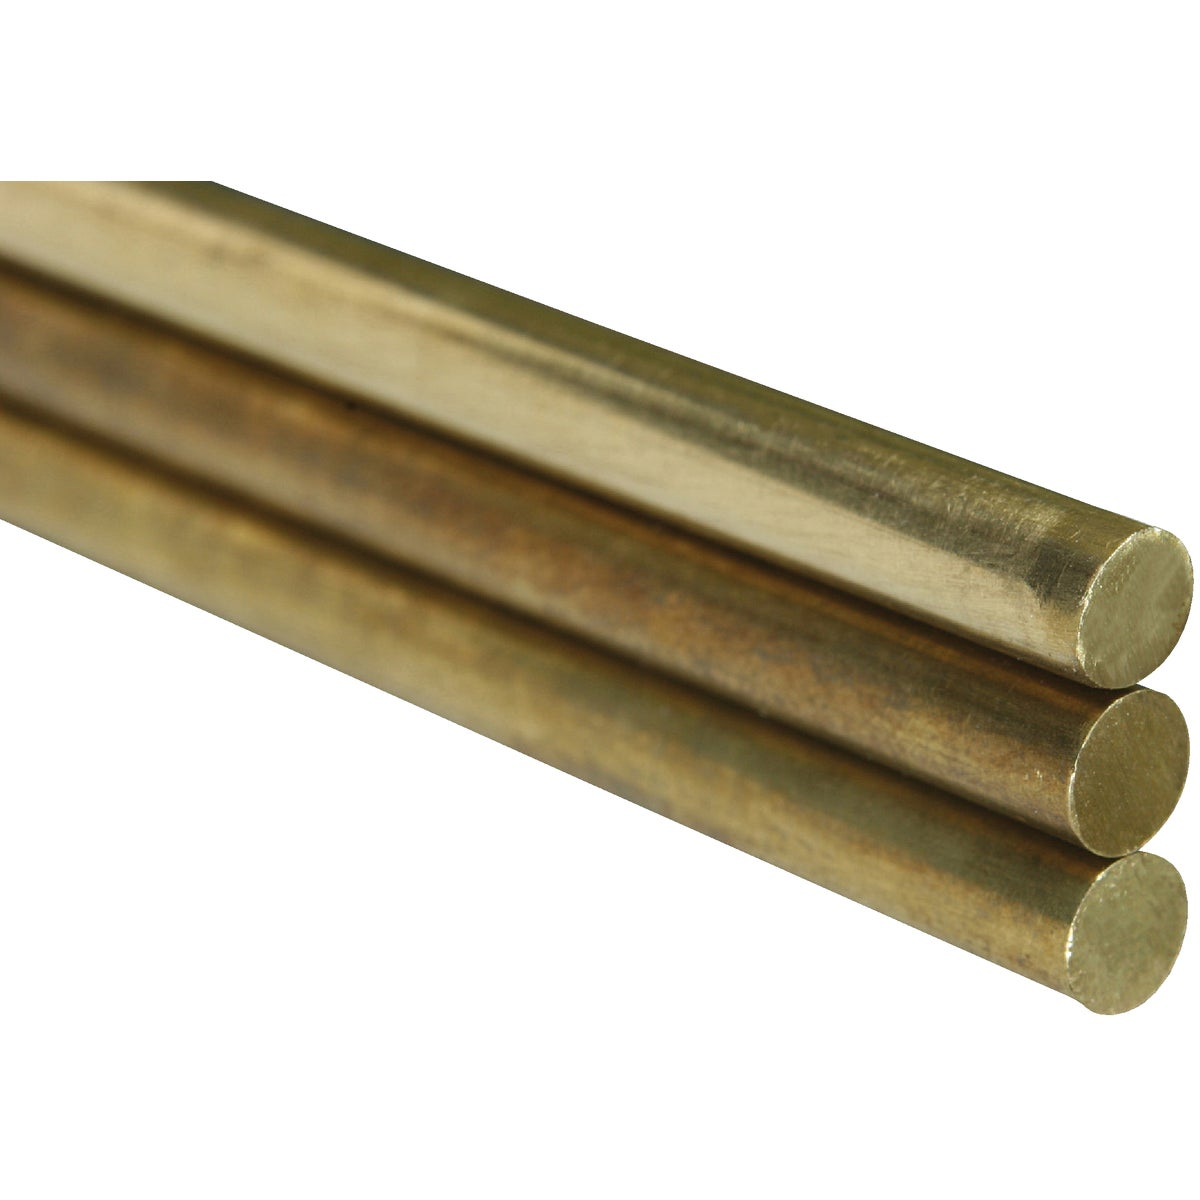 1/4X36 SOLID BRASS ROD - 1165 by K&s Precision Metals